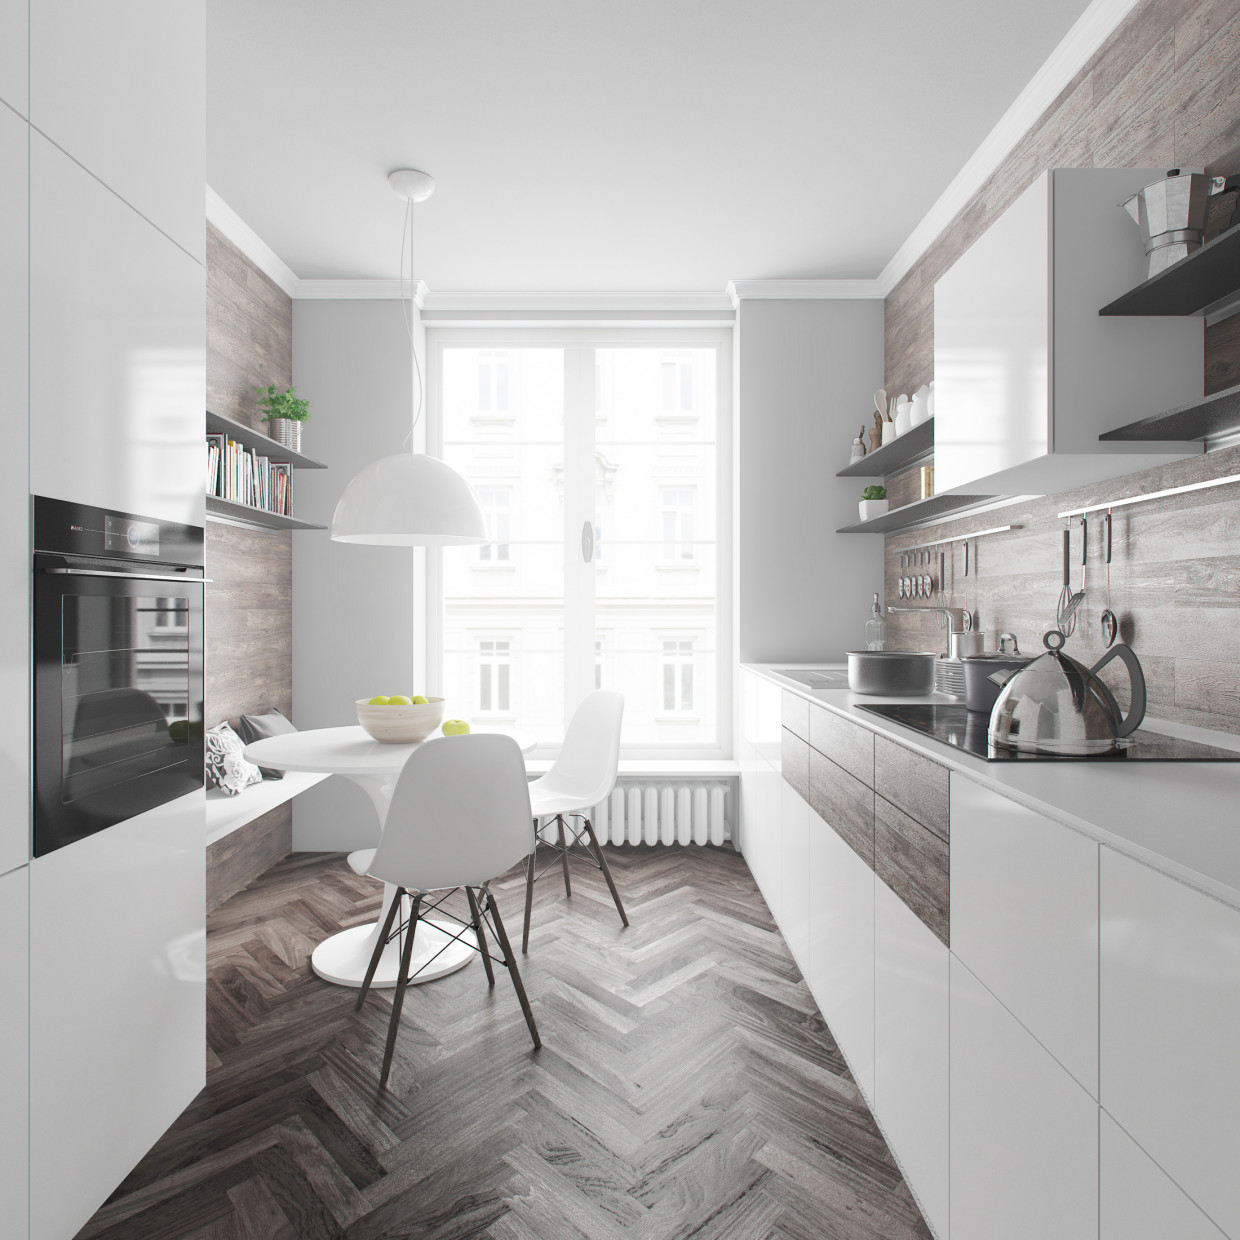 Kitchen in 3d max vray 2.5 image